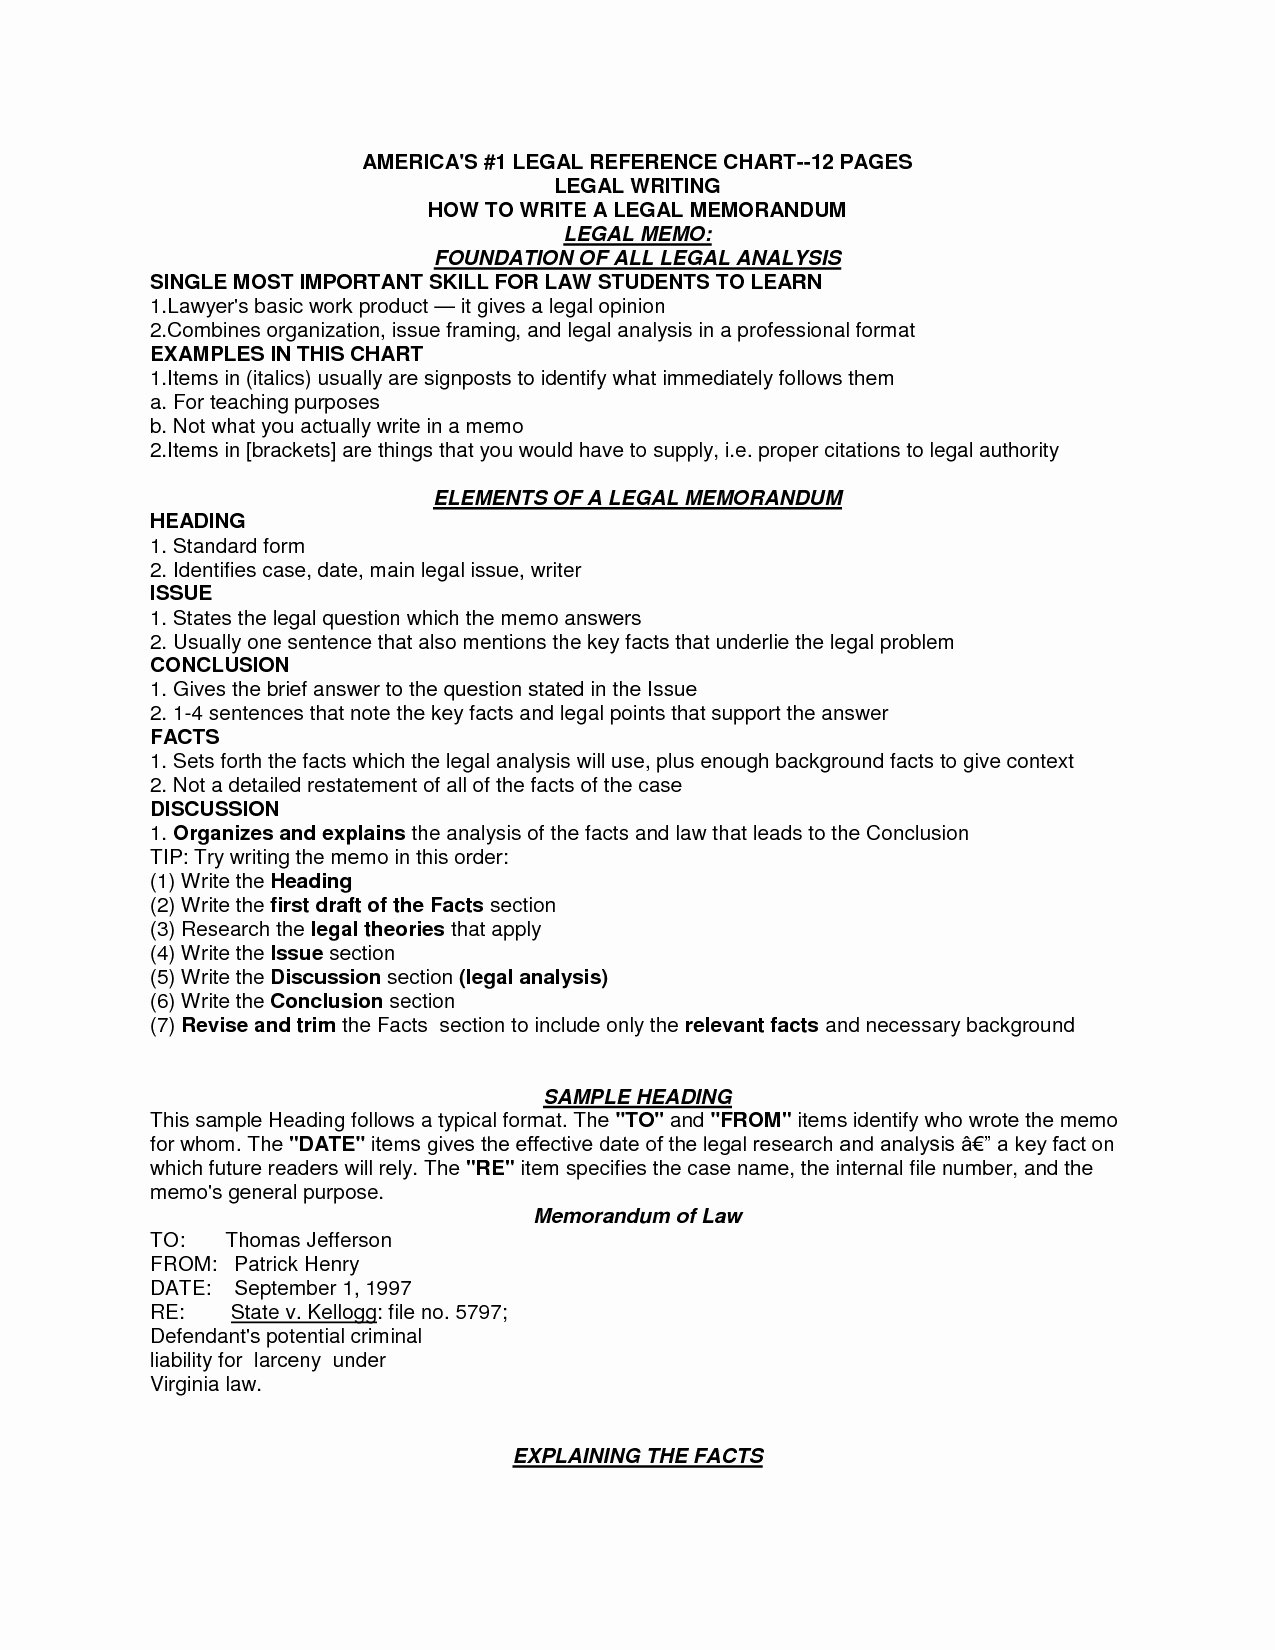 Sample Legal Memo format Beautiful Legal Memo format Irac